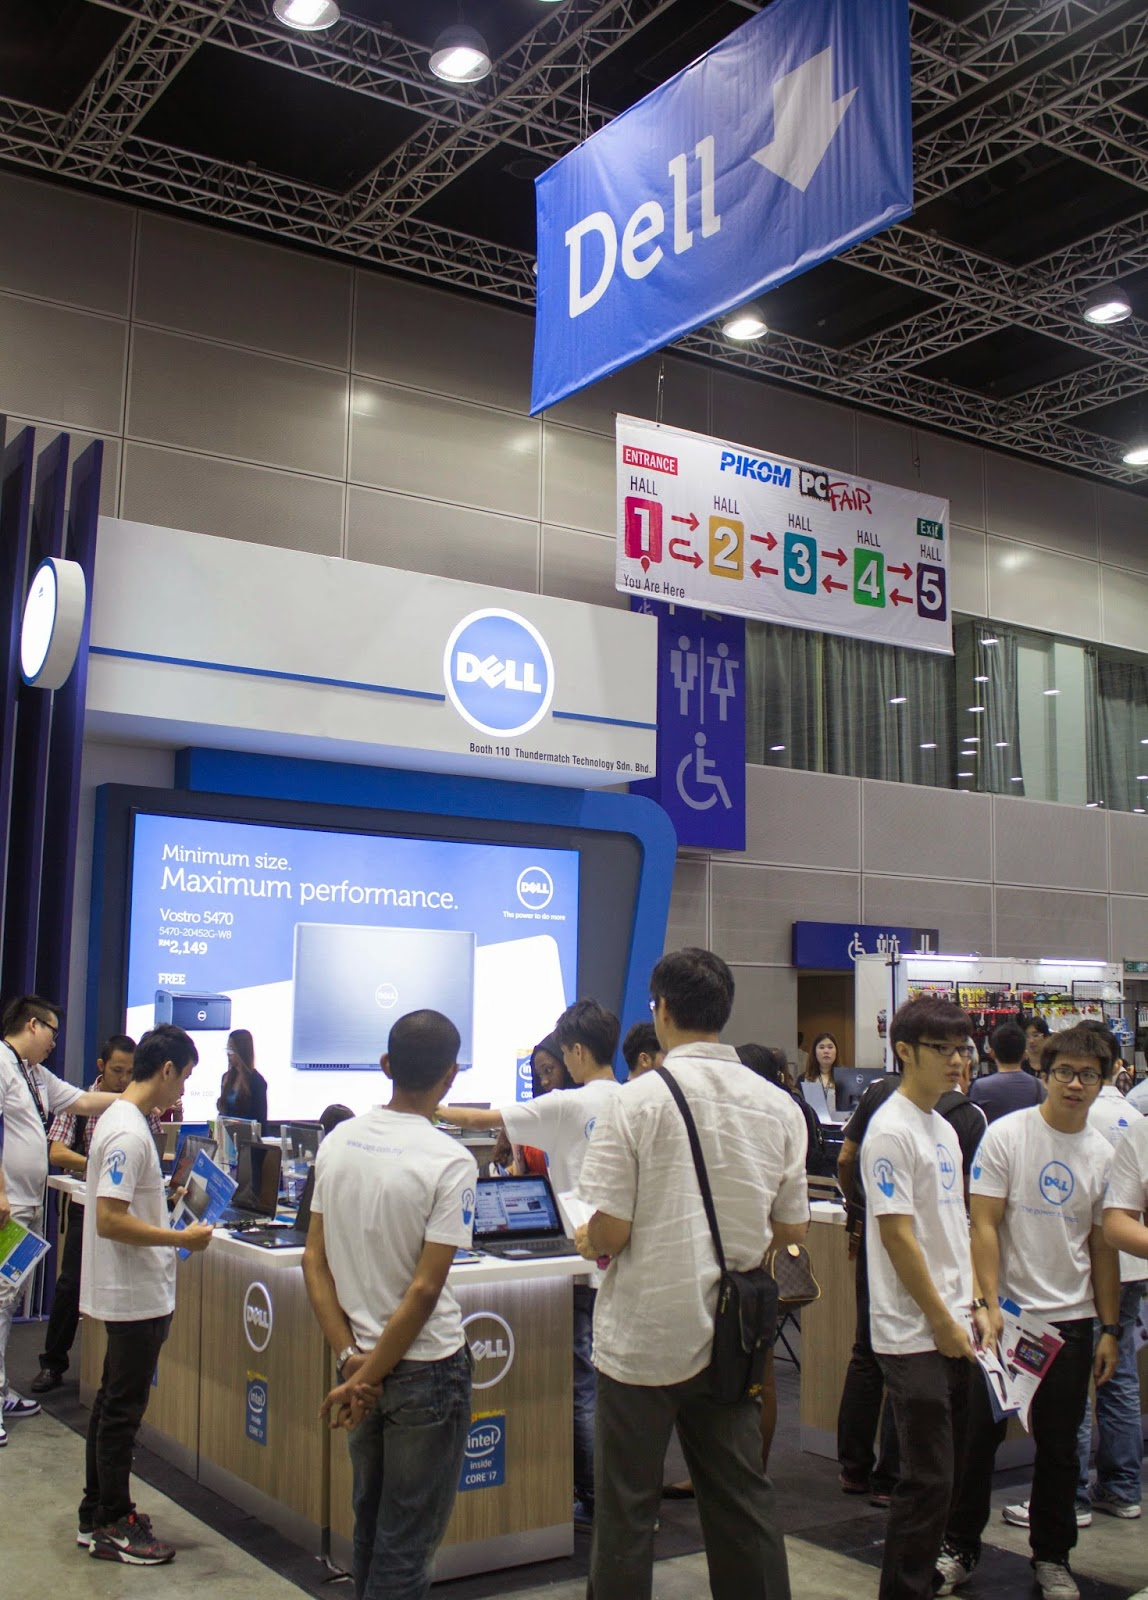 Coverage of PIKOM PC Fair 2014 @ Kuala Lumpur Convention Center 296